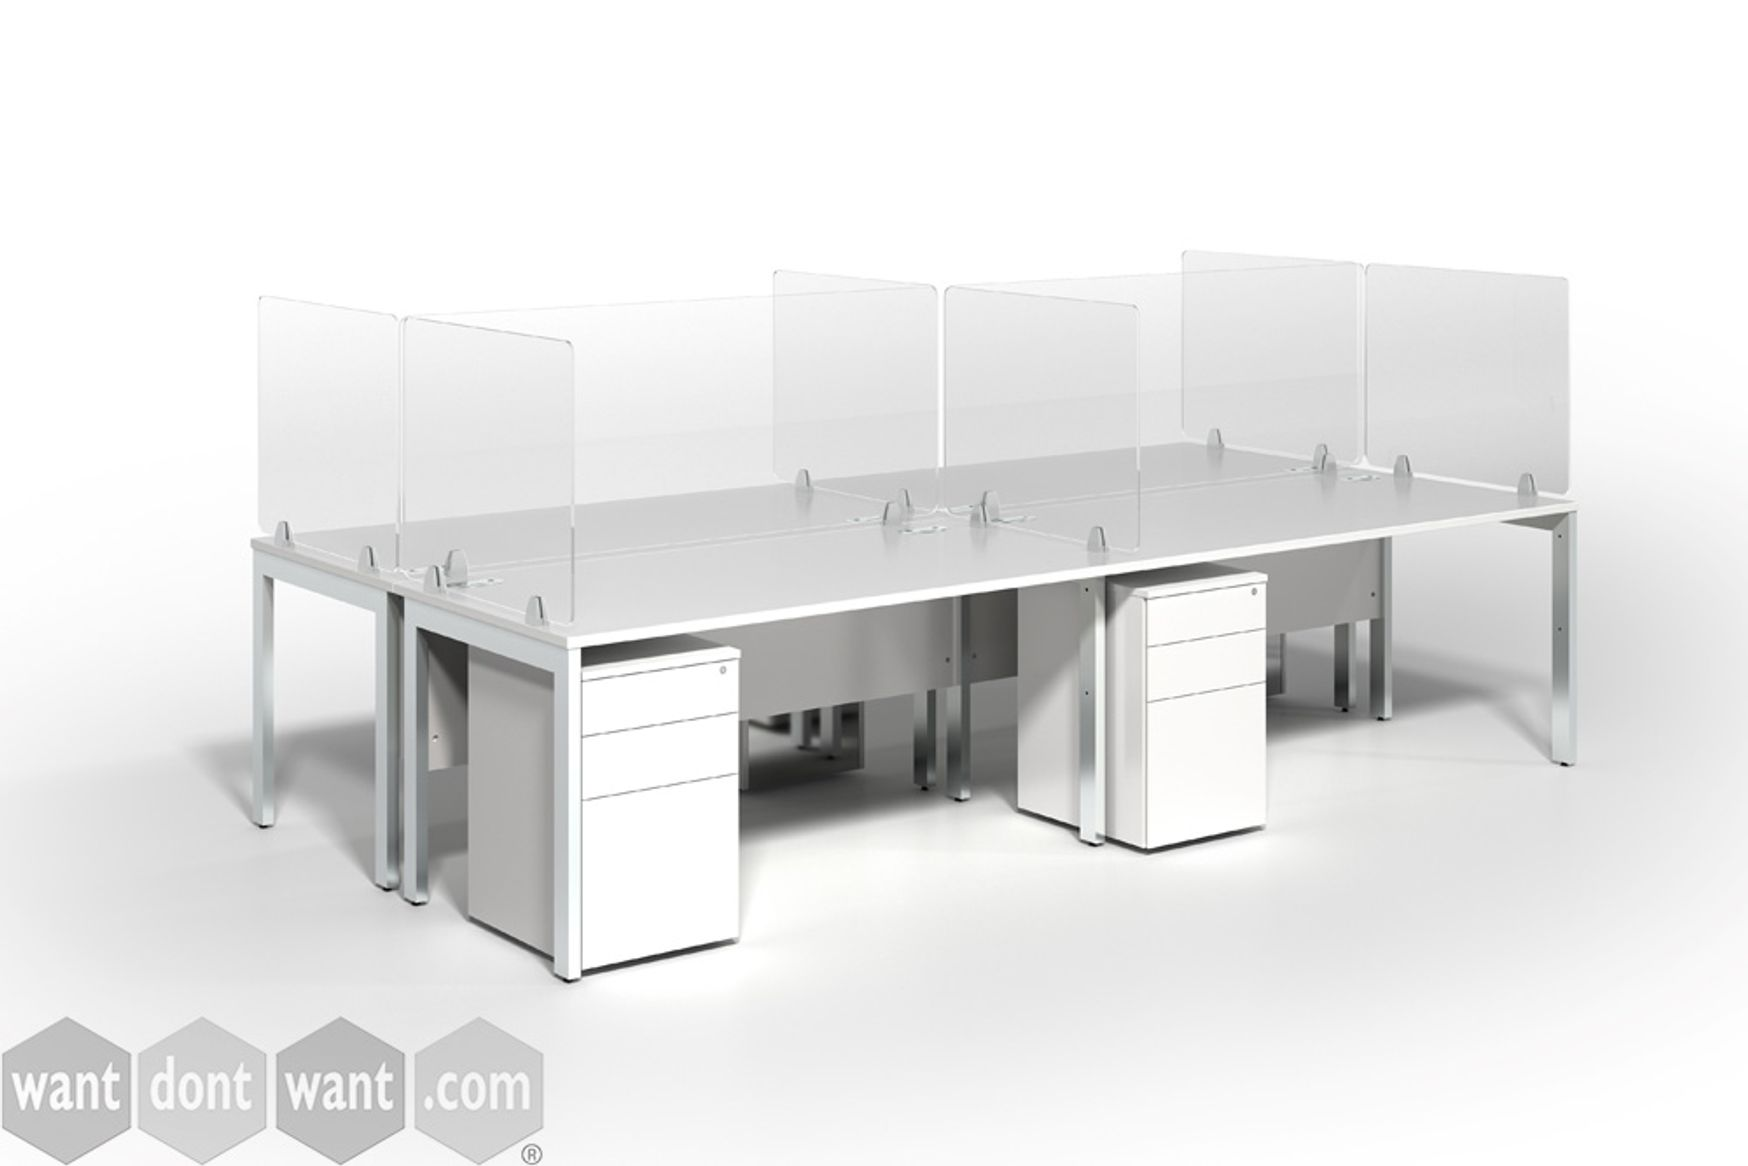 Acrylic desk mounted protective screens.